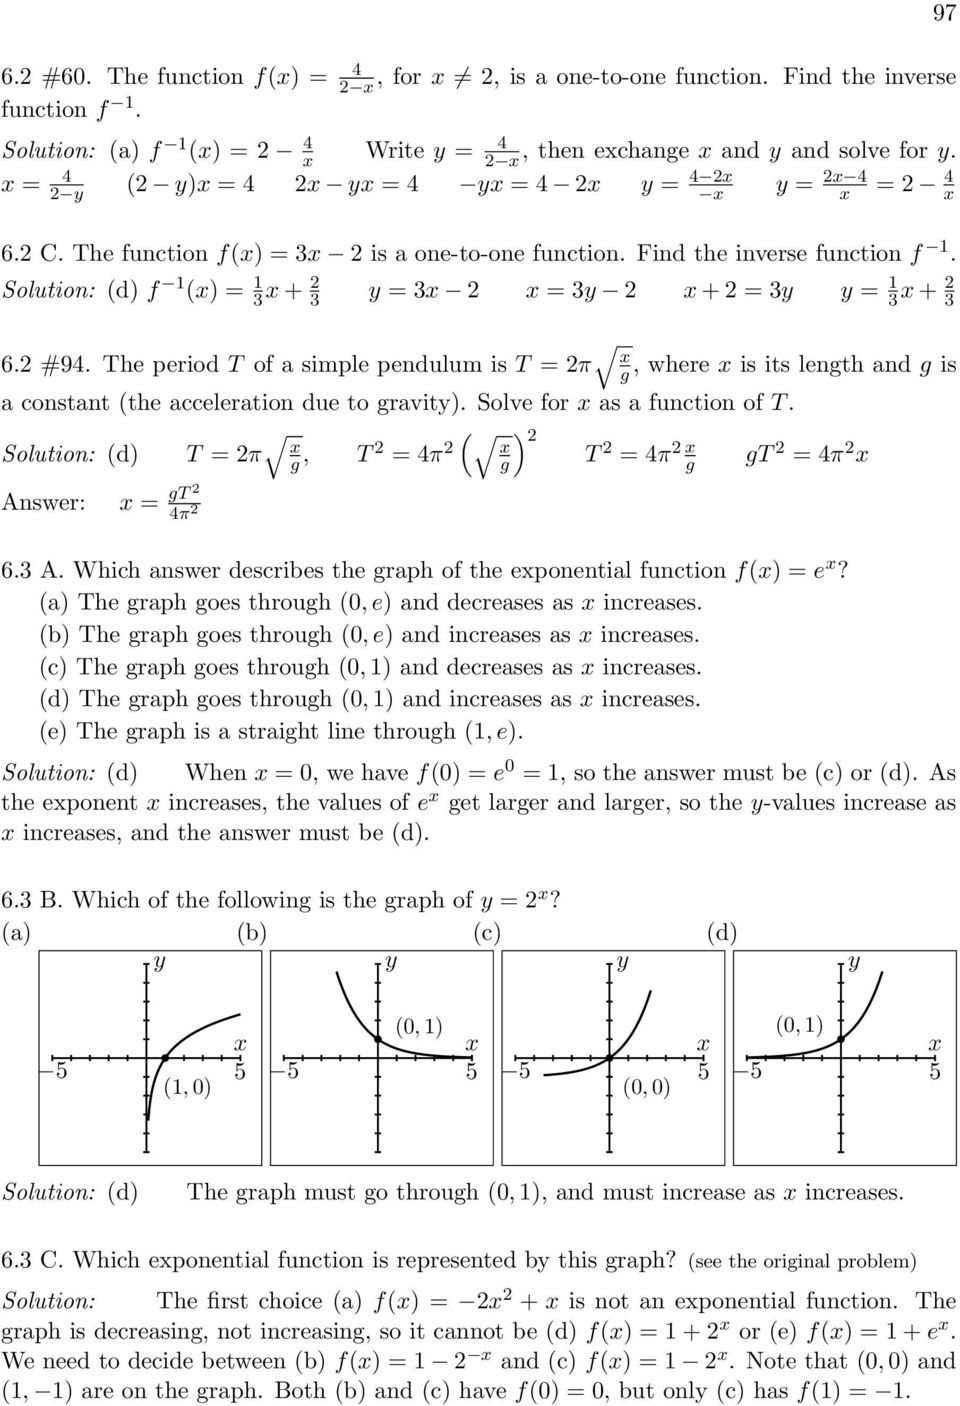 Graphing Inverse Functions Worksheet Exponential and Logarithmic Functions Pdf Free Download